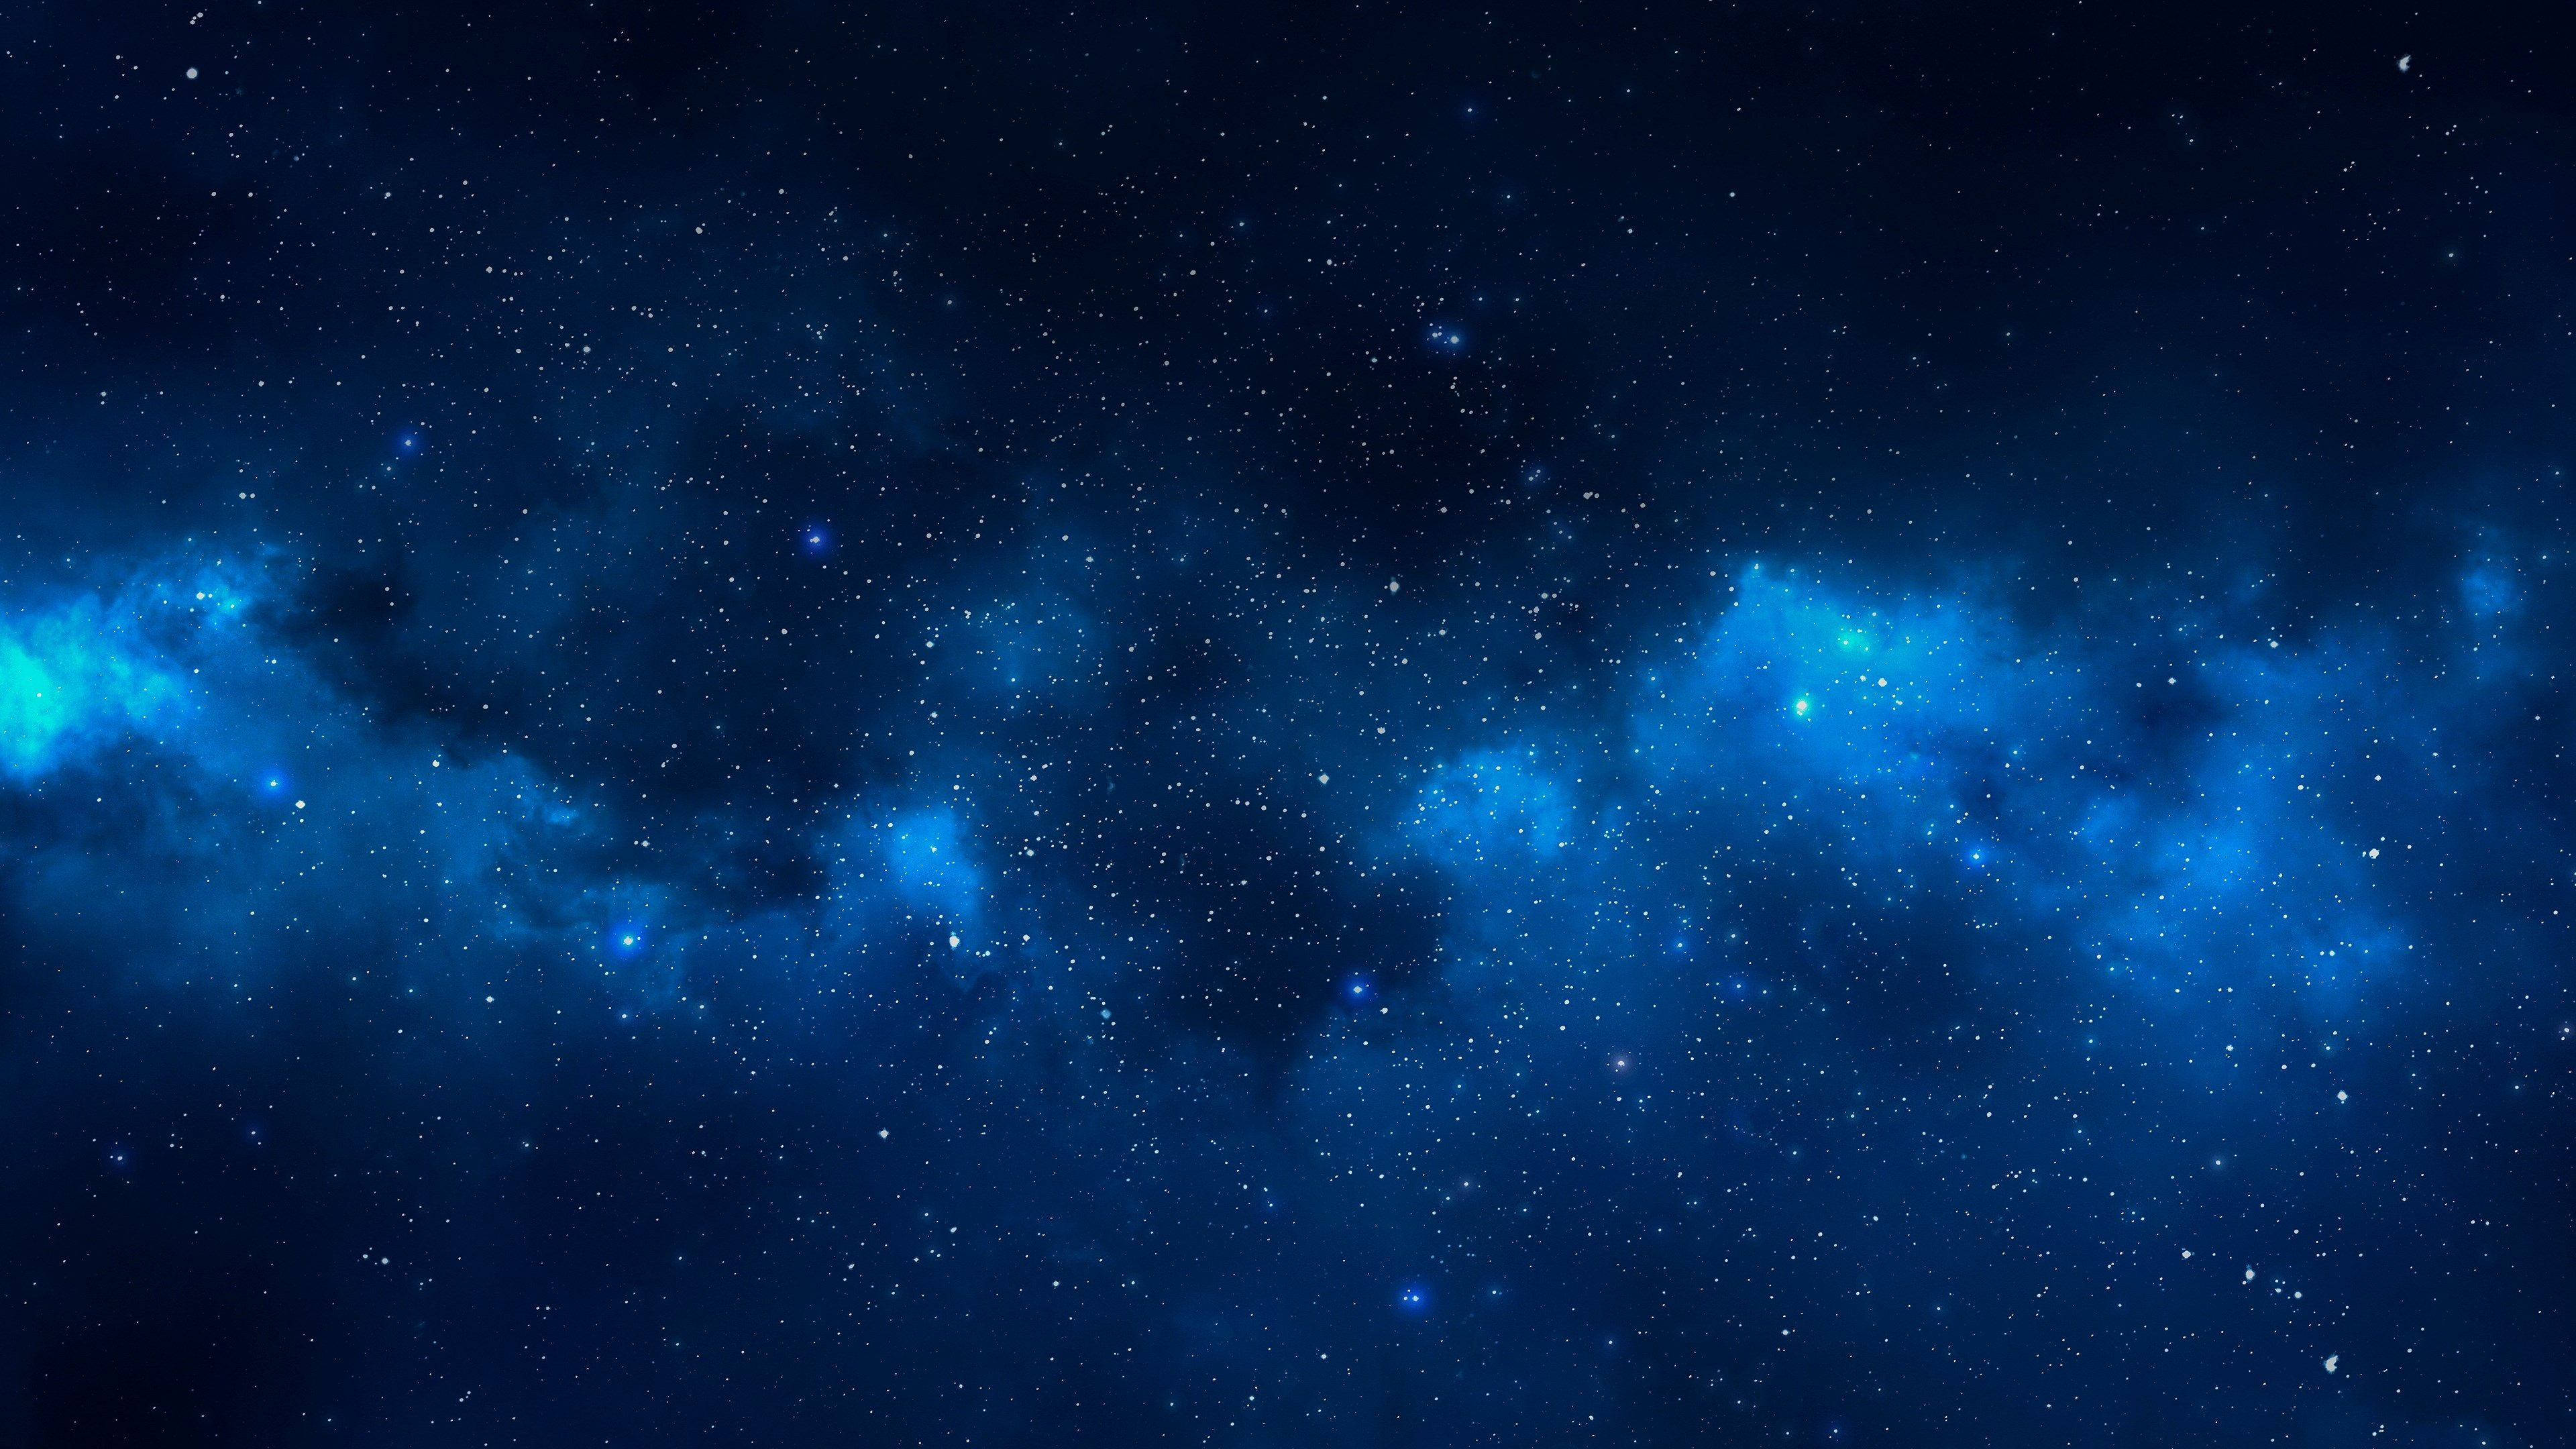 3840x2160 Stars 4k Computer Wallpaper Hd Free Download Computer Wallpaper Hd Blue Galaxy Wallpaper Galaxy Wallpaper